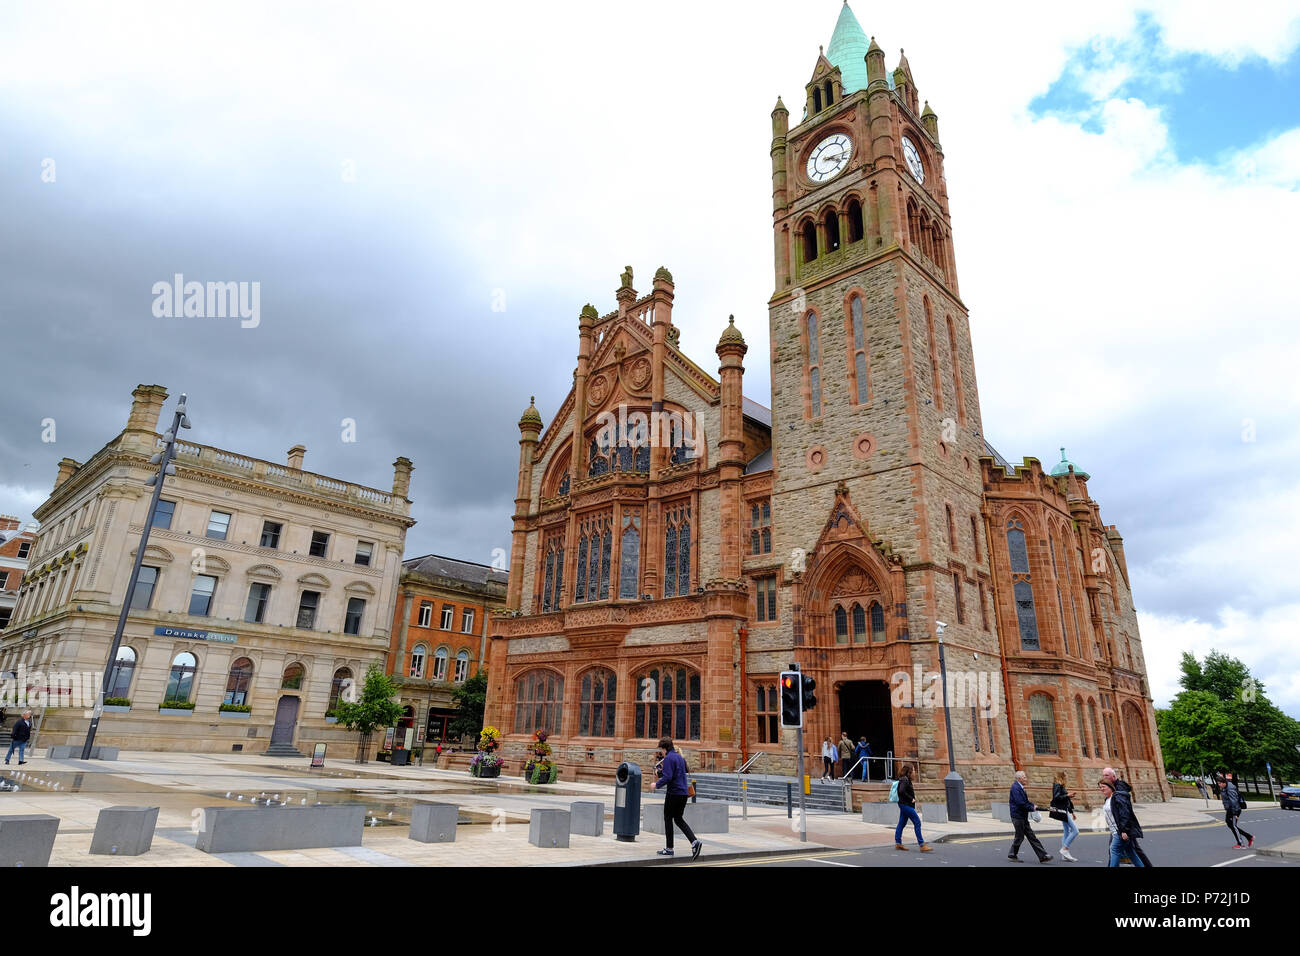 The Guildhall in Derry, County Londonderry, Ulster, Northern Ireland, United Kingdom, Europe - Stock Image